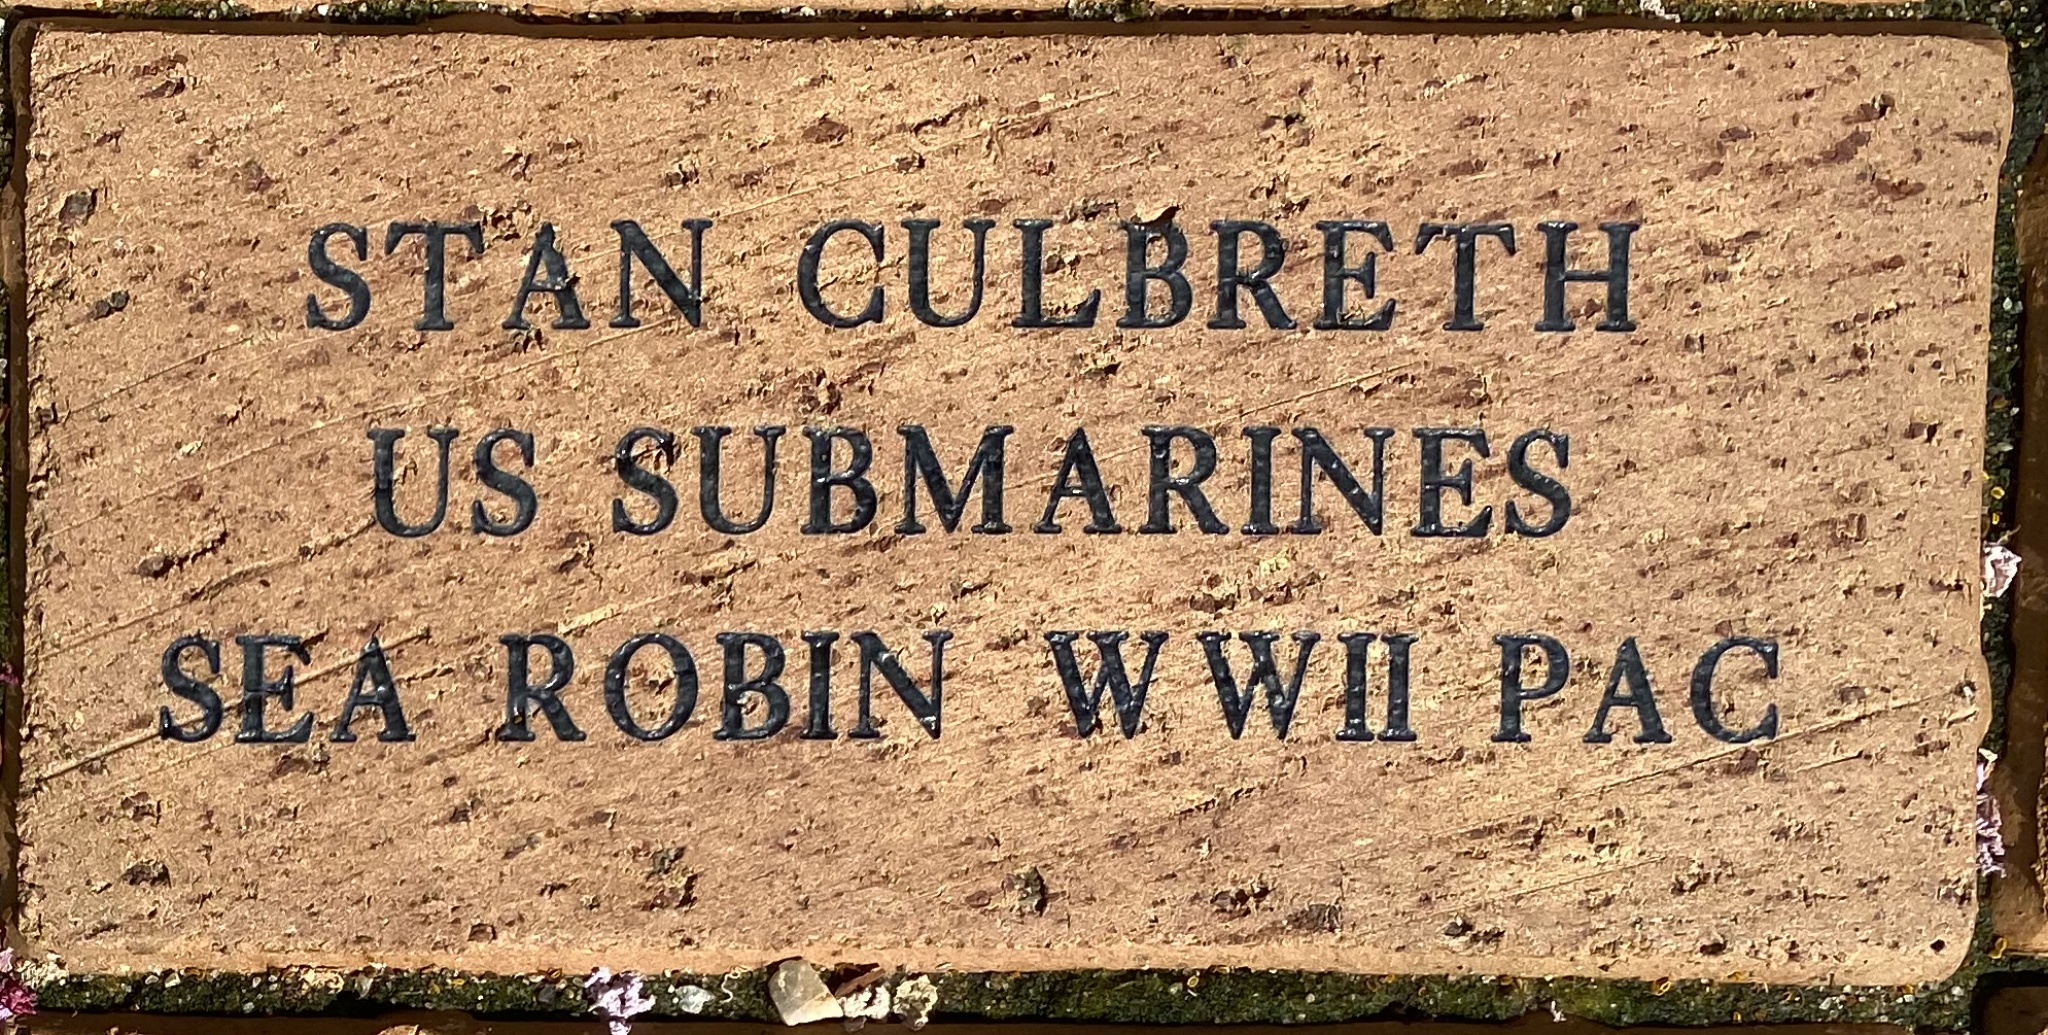 STAN CULBRETH US SUBMARINES SEA ROBIN WWII PAC